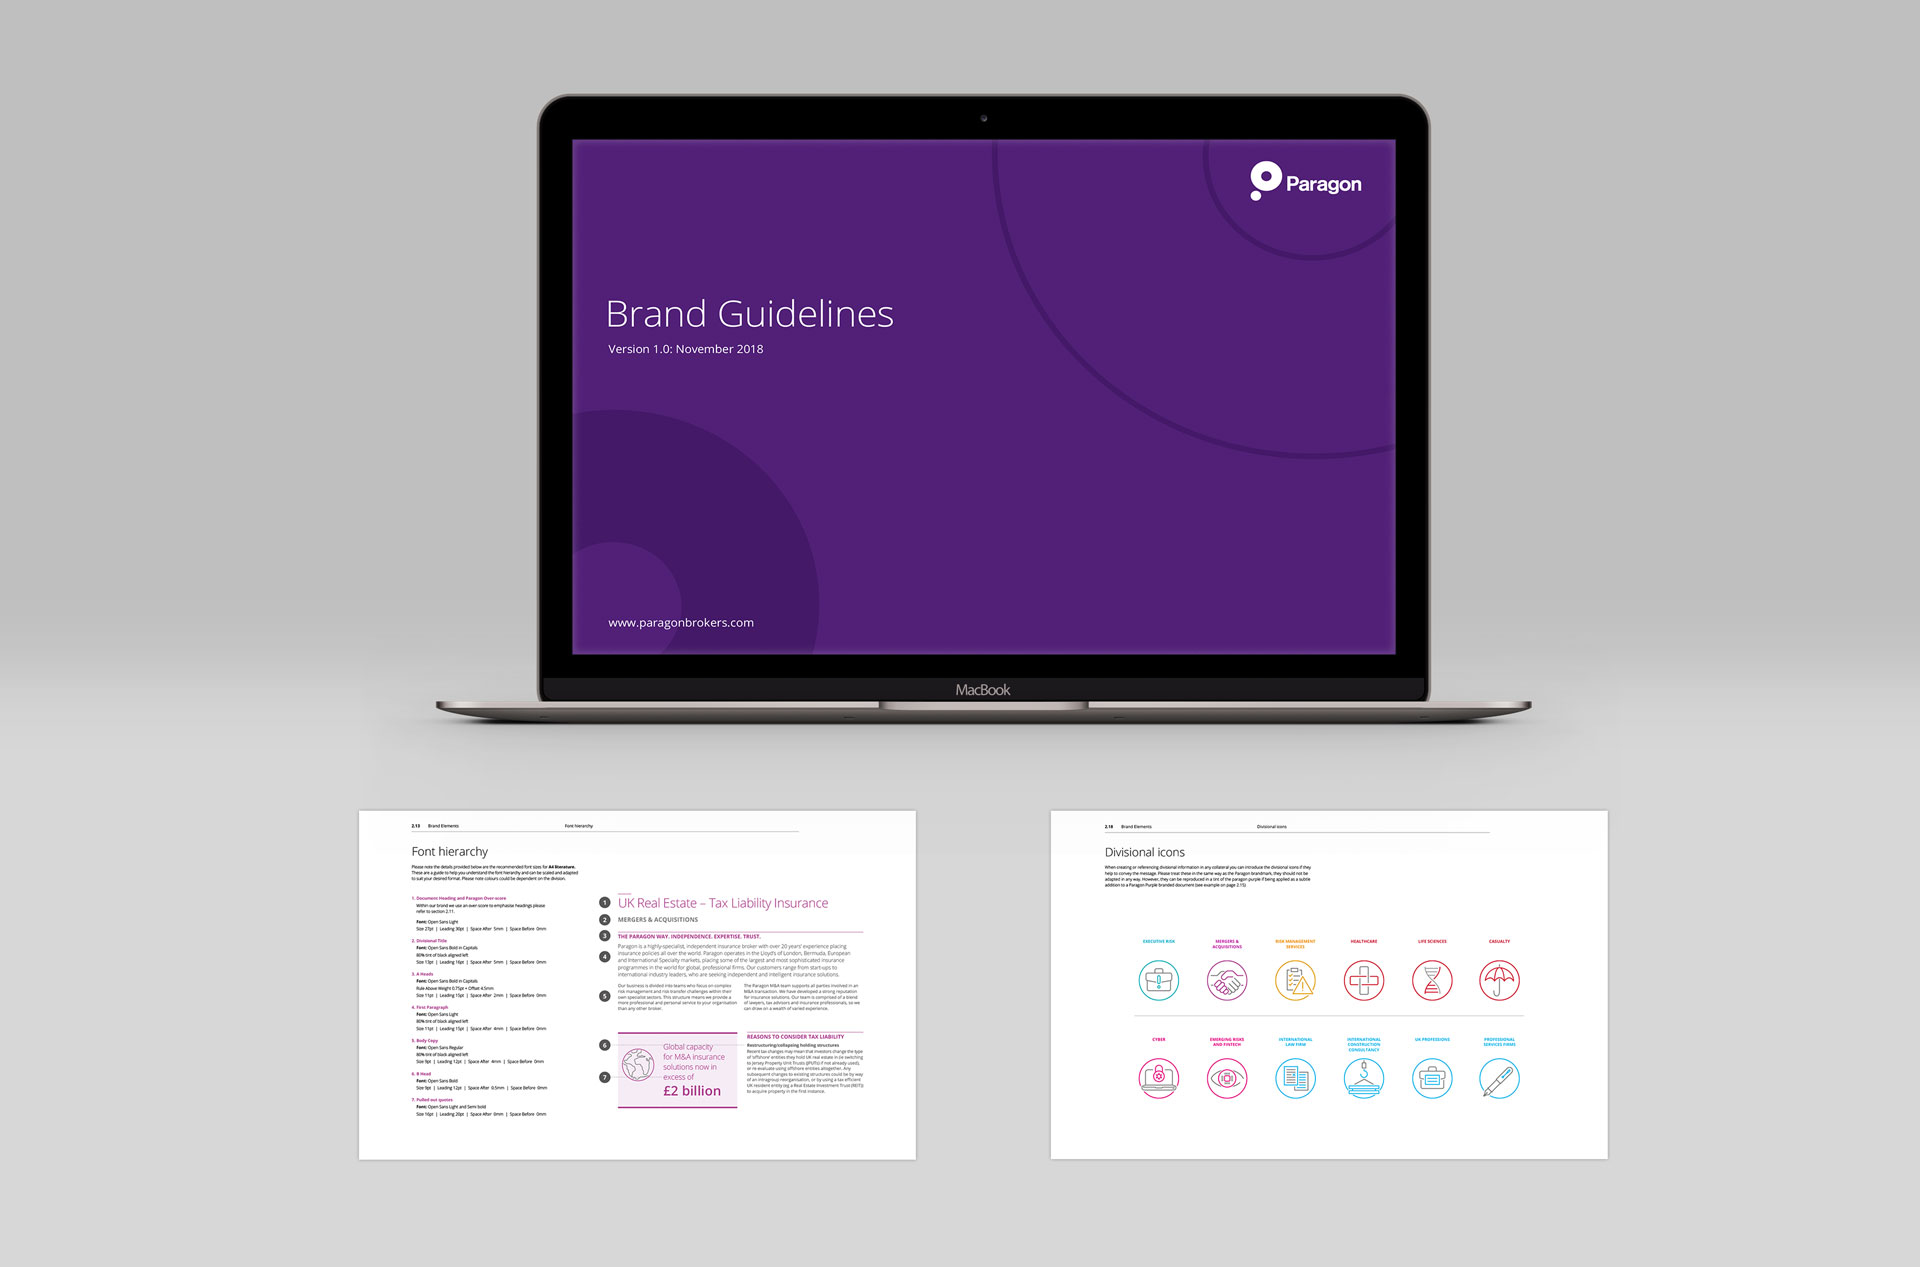 Glendale Creative Paragon Brand Guidelines